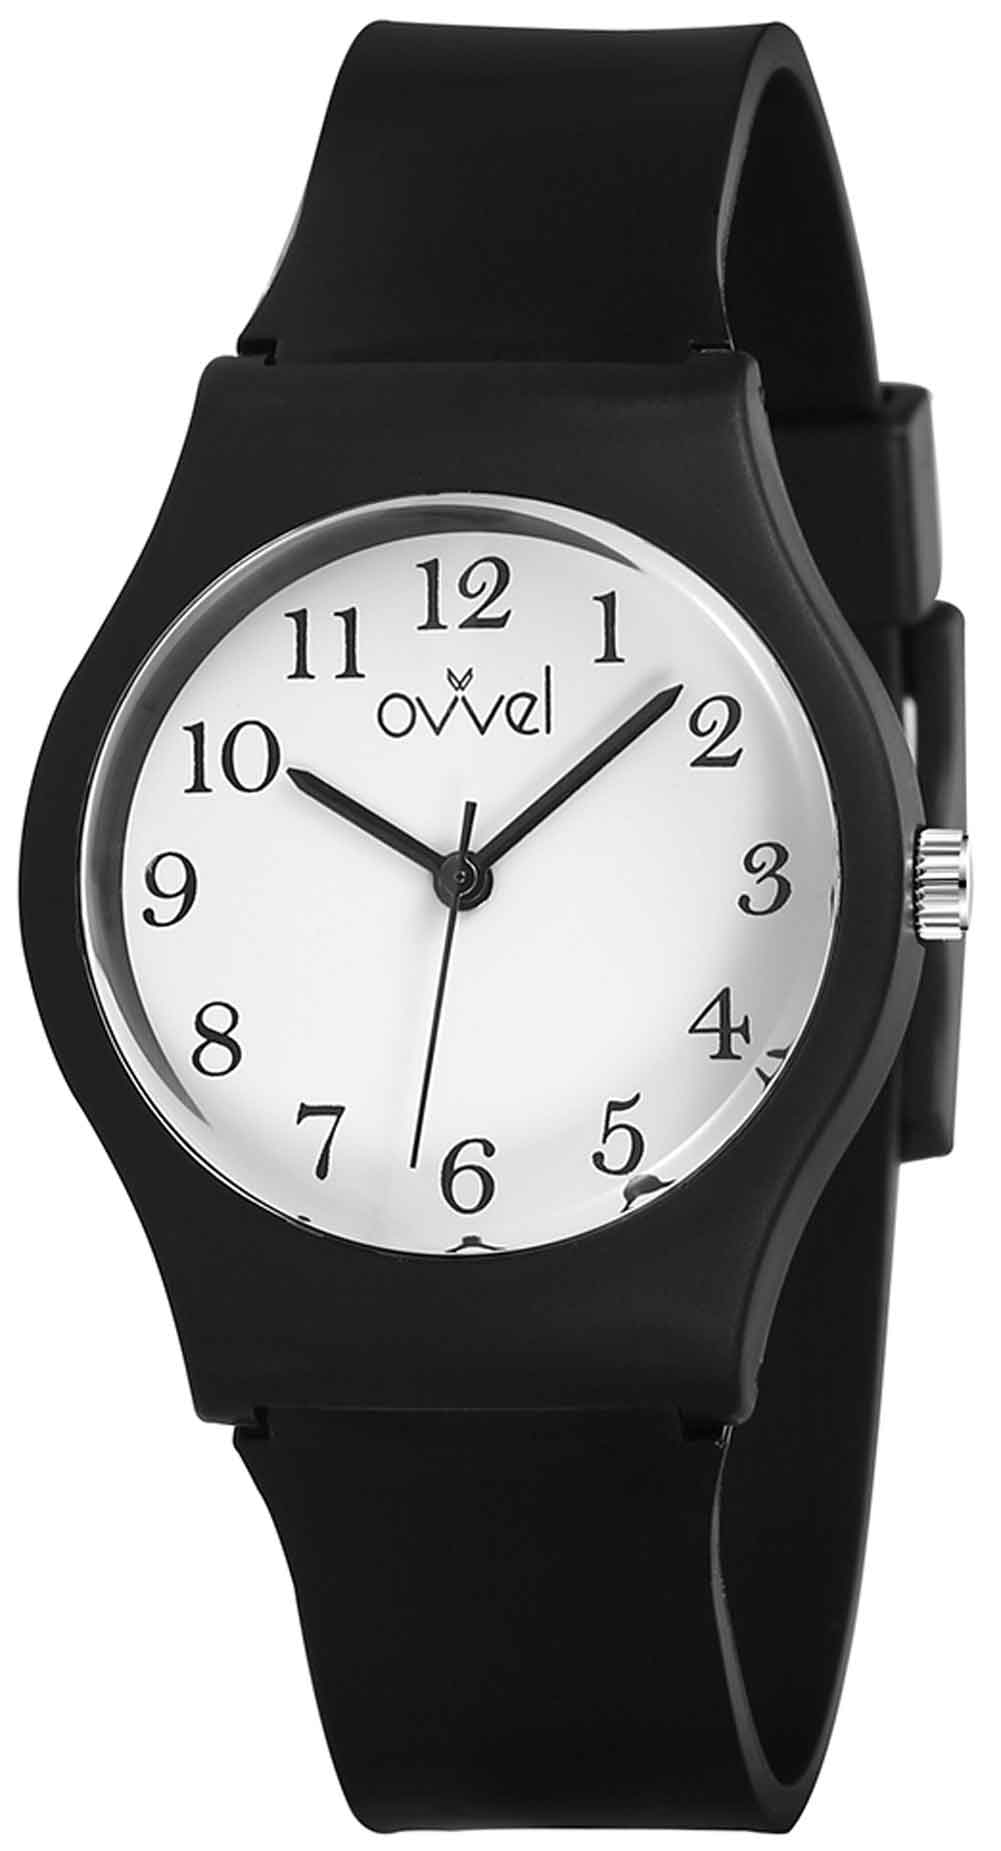 Watches for kids - Black